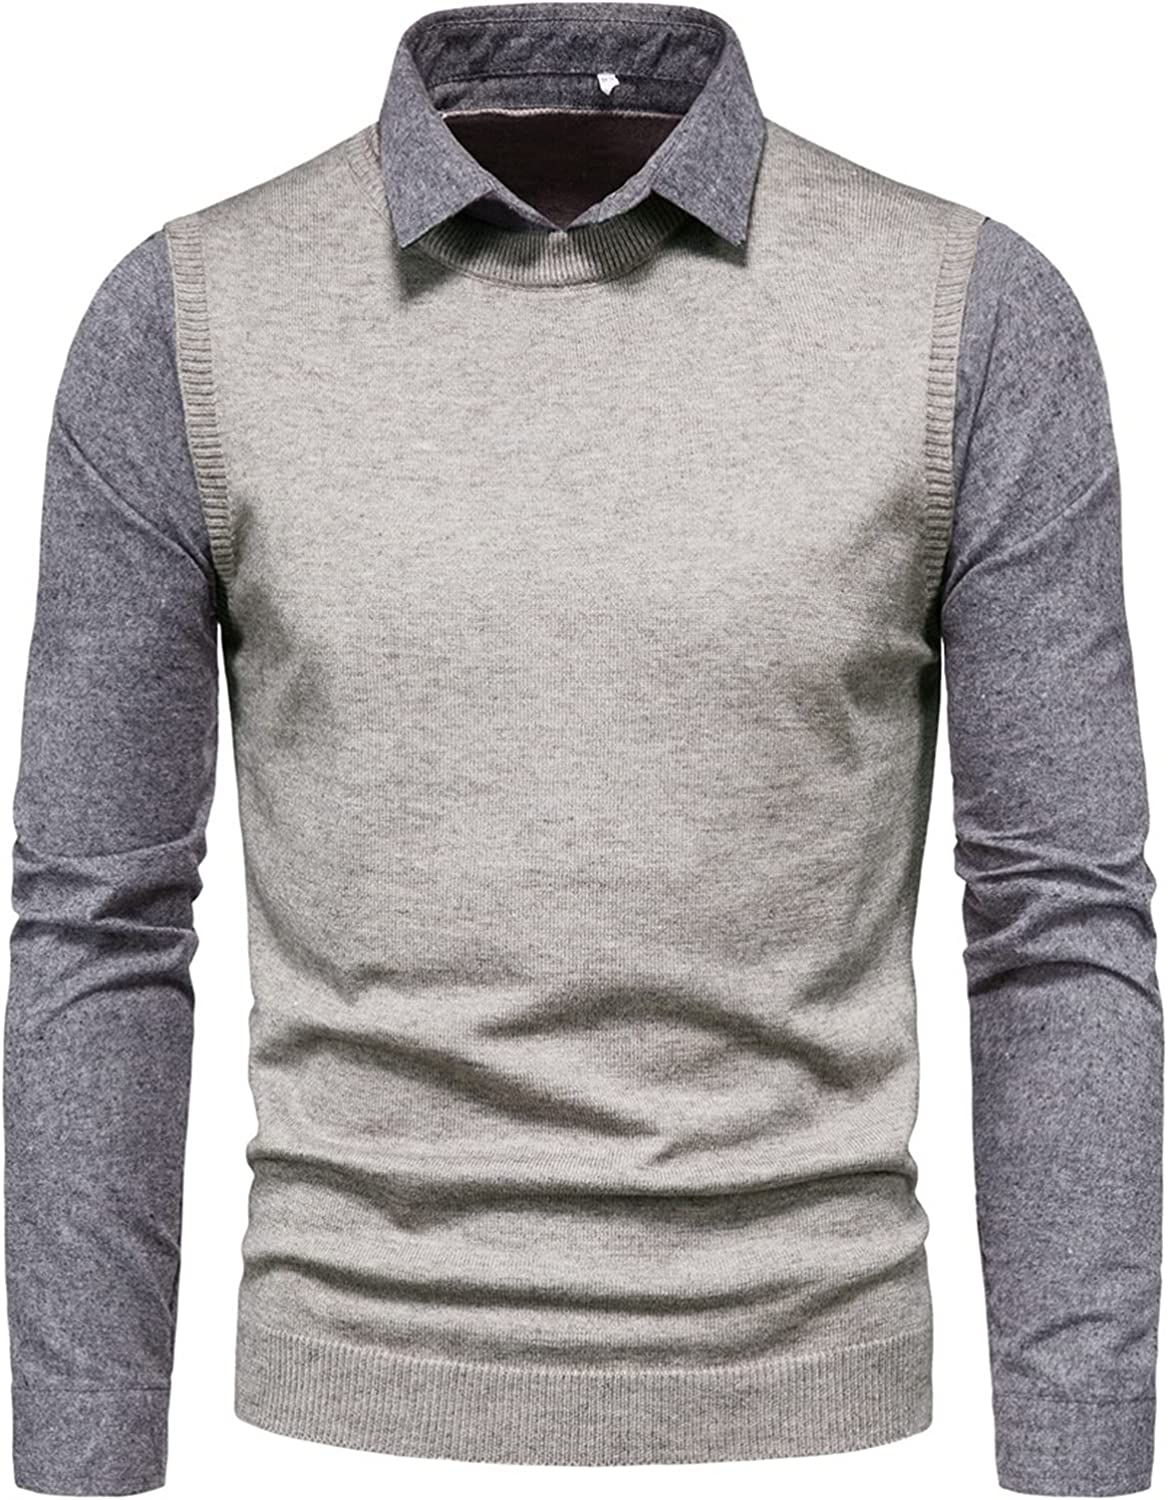 EverNight Men's Fake Two-Piece Sweater,Long Sleeve Regular Fit Knitwear,Turndown Collar Comfortable Business Casual Pullover